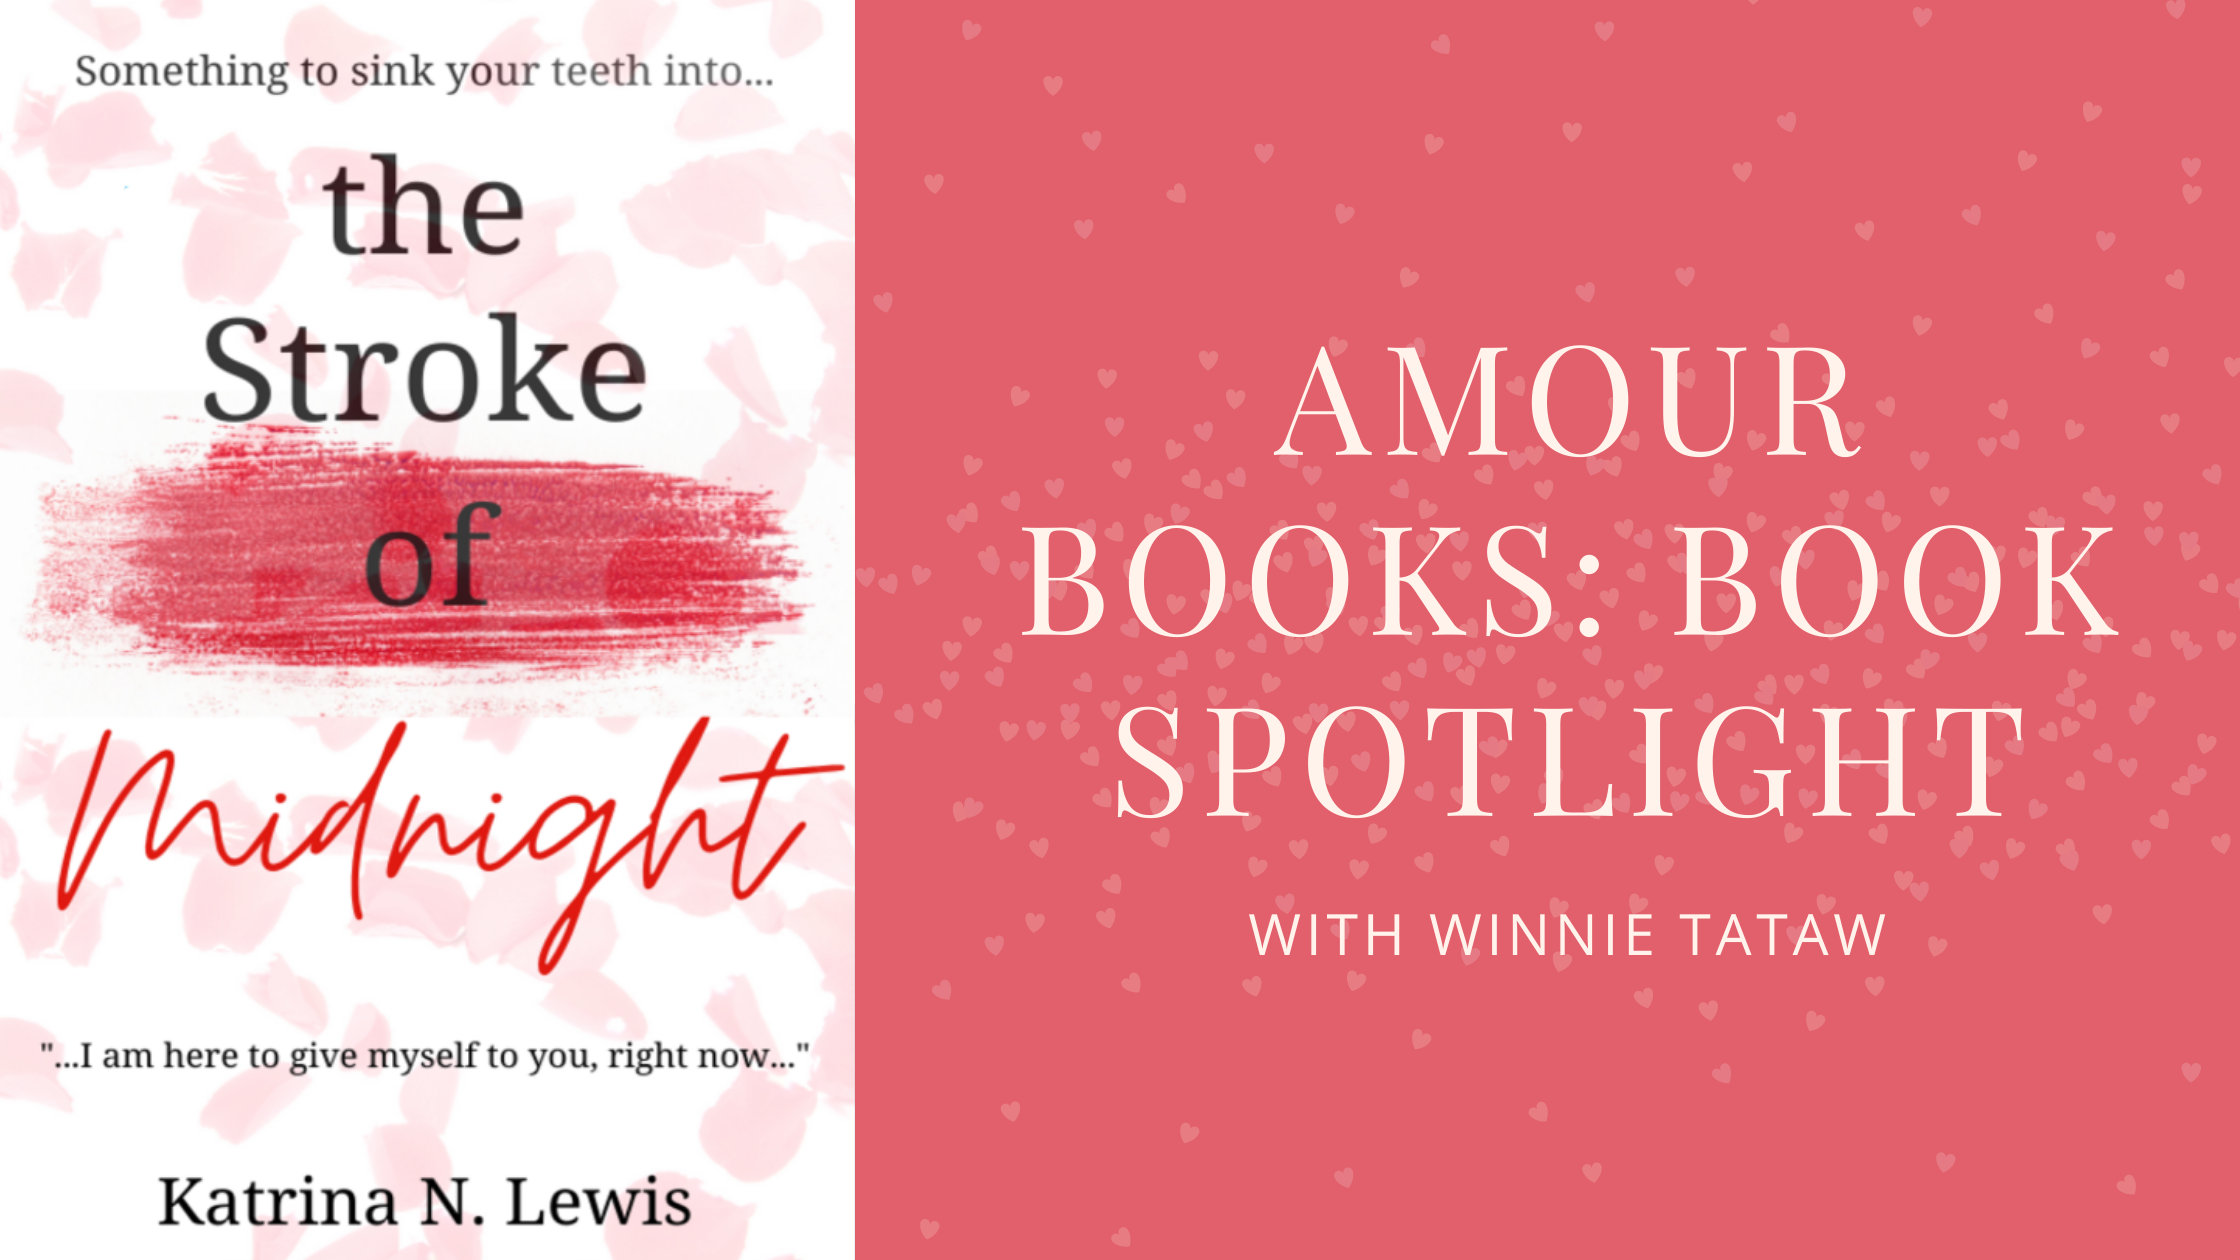 amour books book spotlight Blog Banner